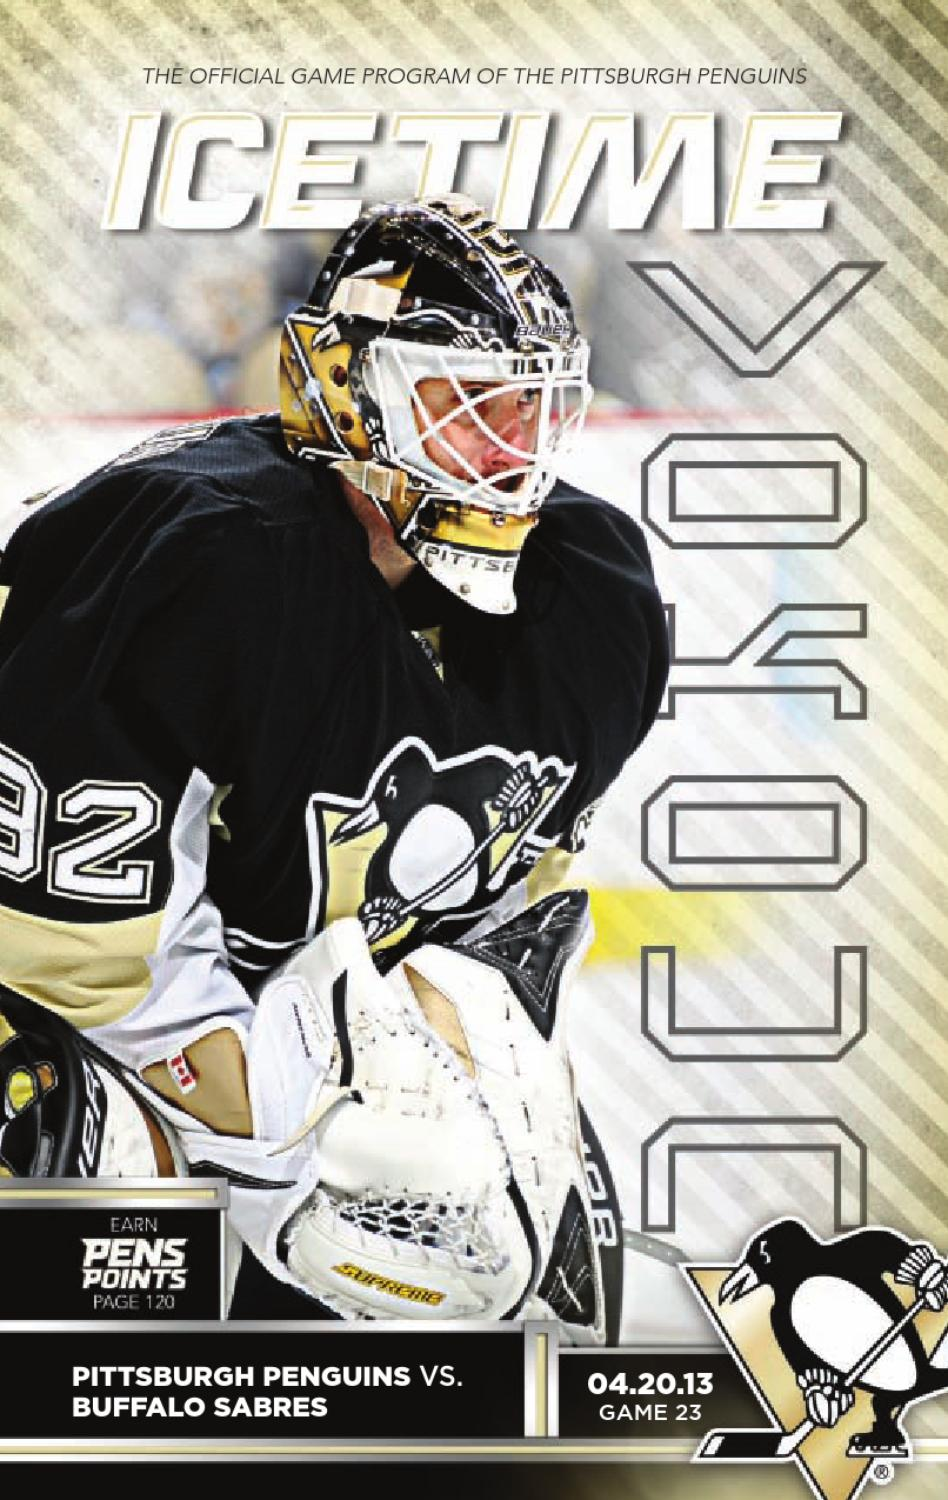 c6a9cbc2192dc1 IceTime - Game 23 vs. Buffalo Sabres 4/23/13 by Pittsburgh Penguins ...